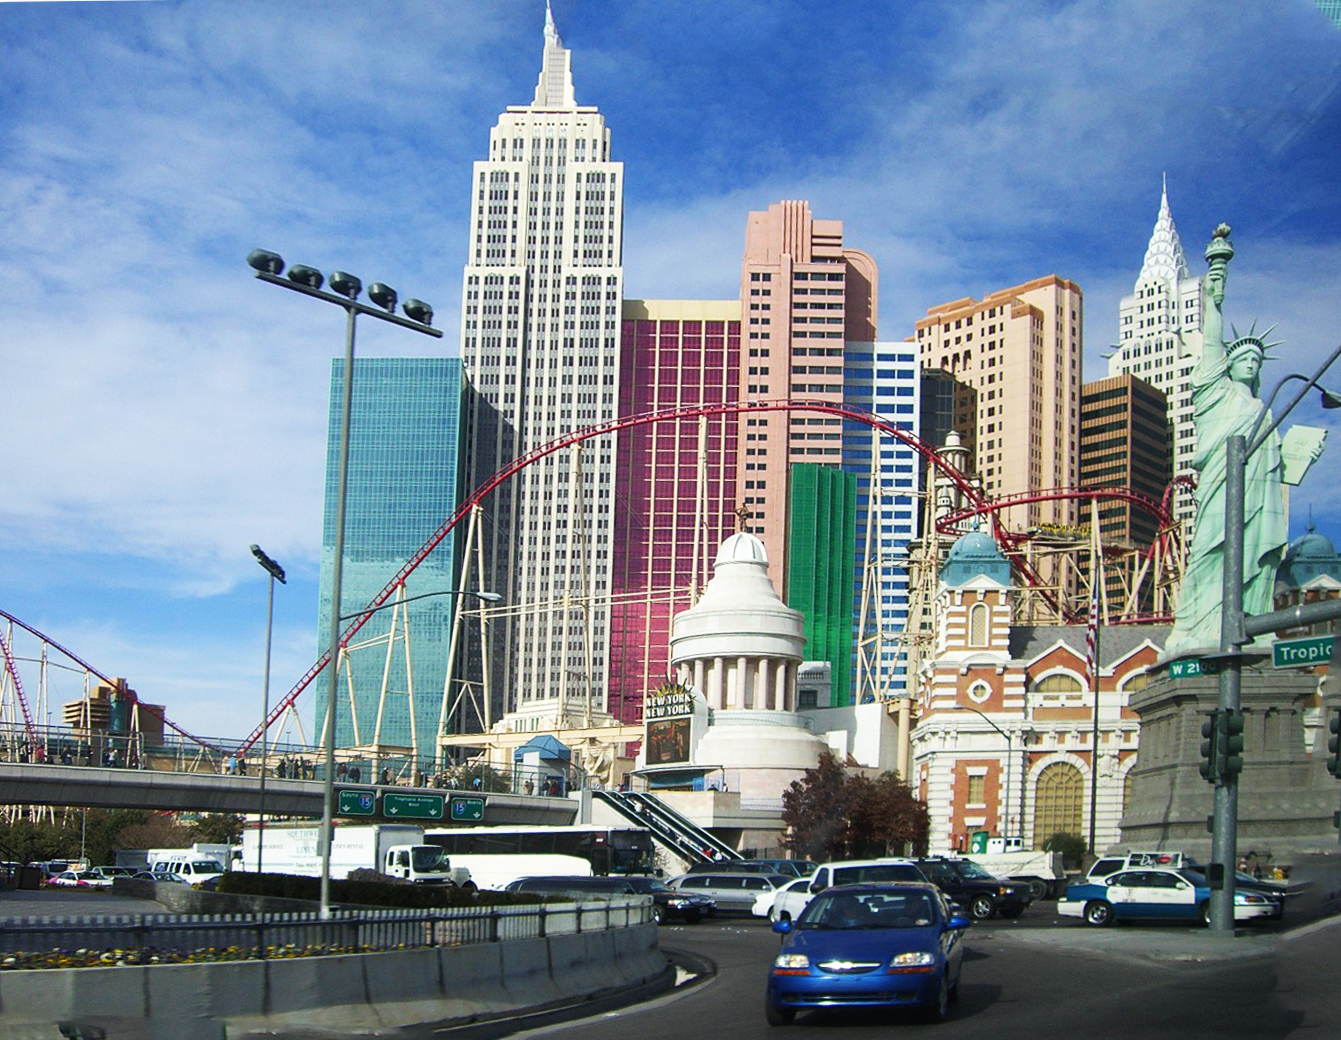 C:\Users\Russ\Desktop\Documents\Canada photos\Las Vegas Trip2007\Las Vegas\21.JPG